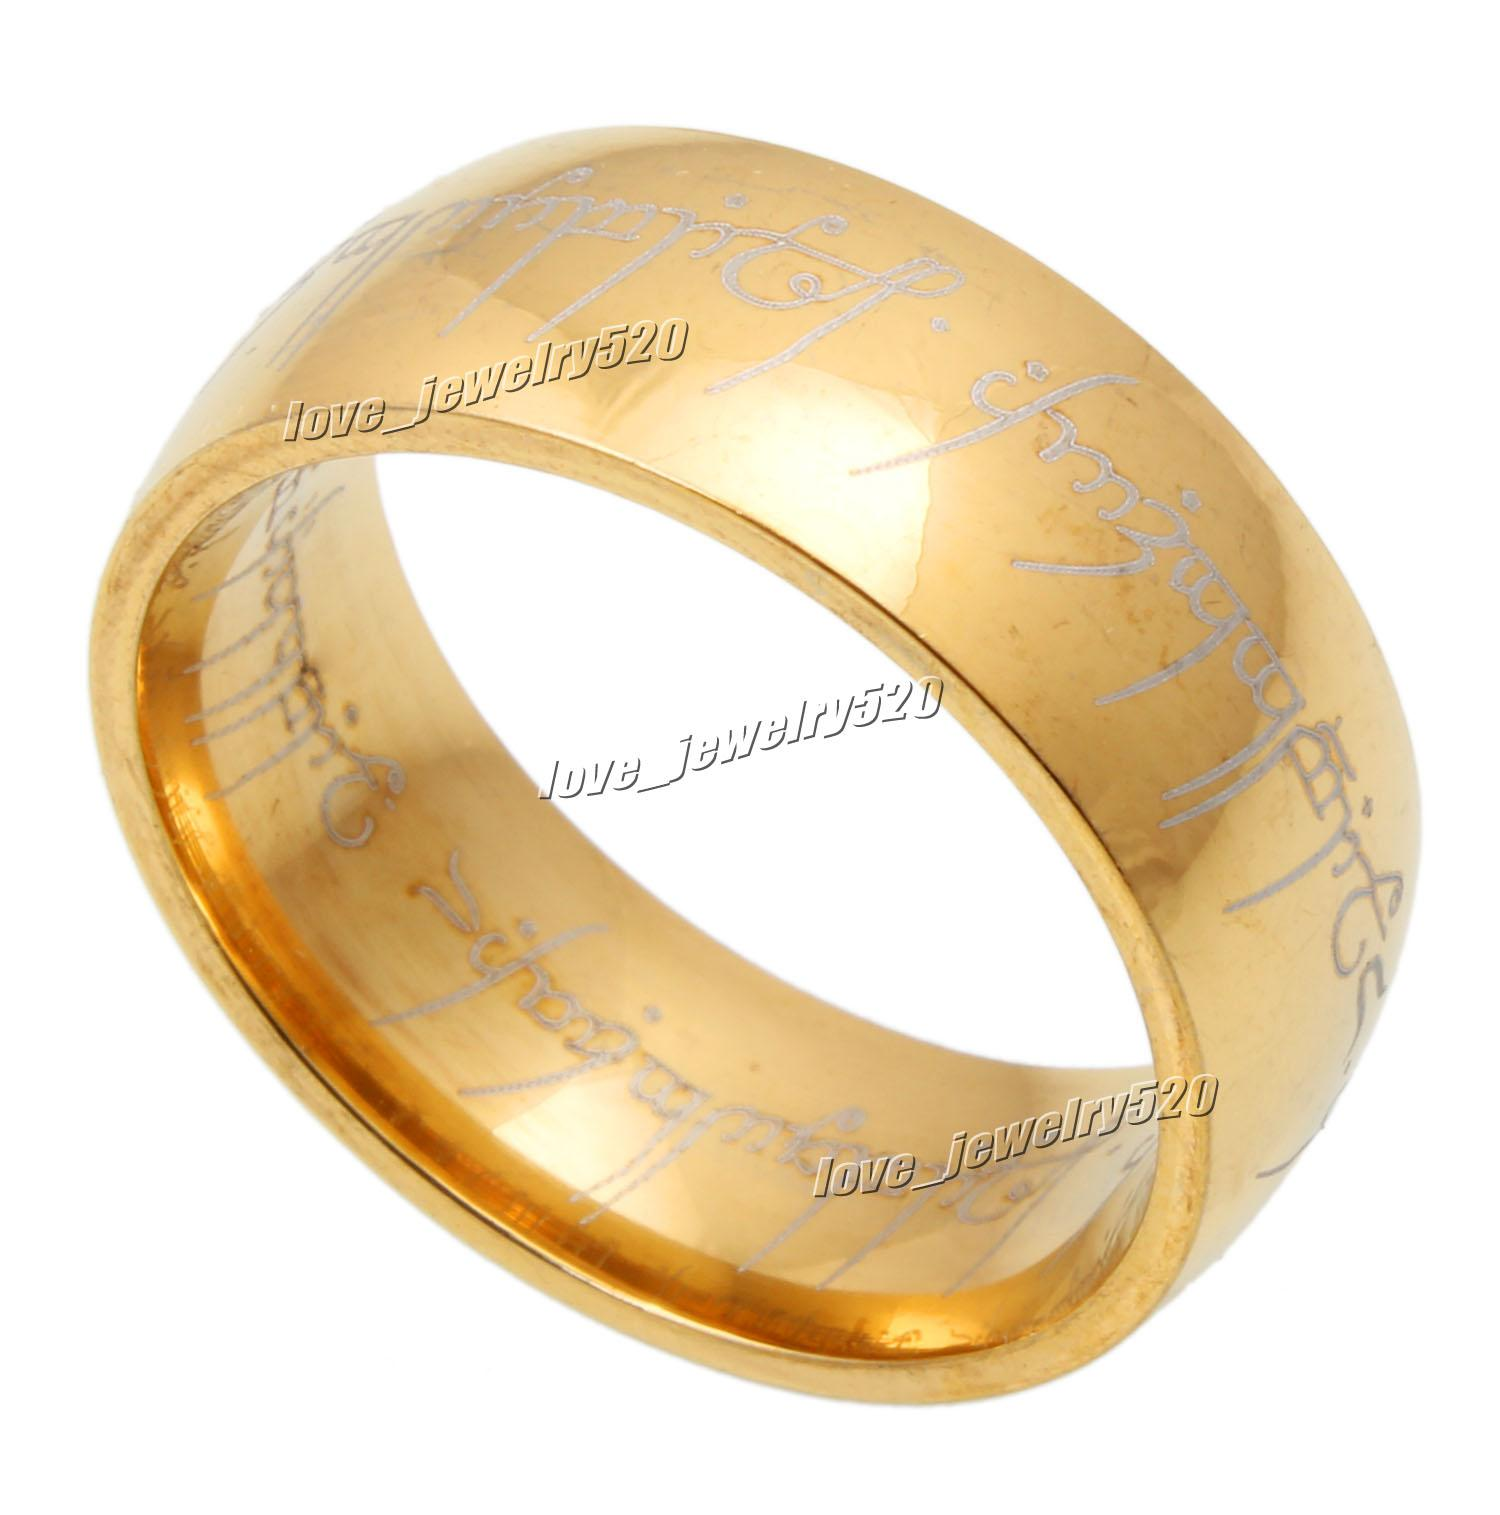 ring rings women mostbeautifulthings for jewellery designs gold loved